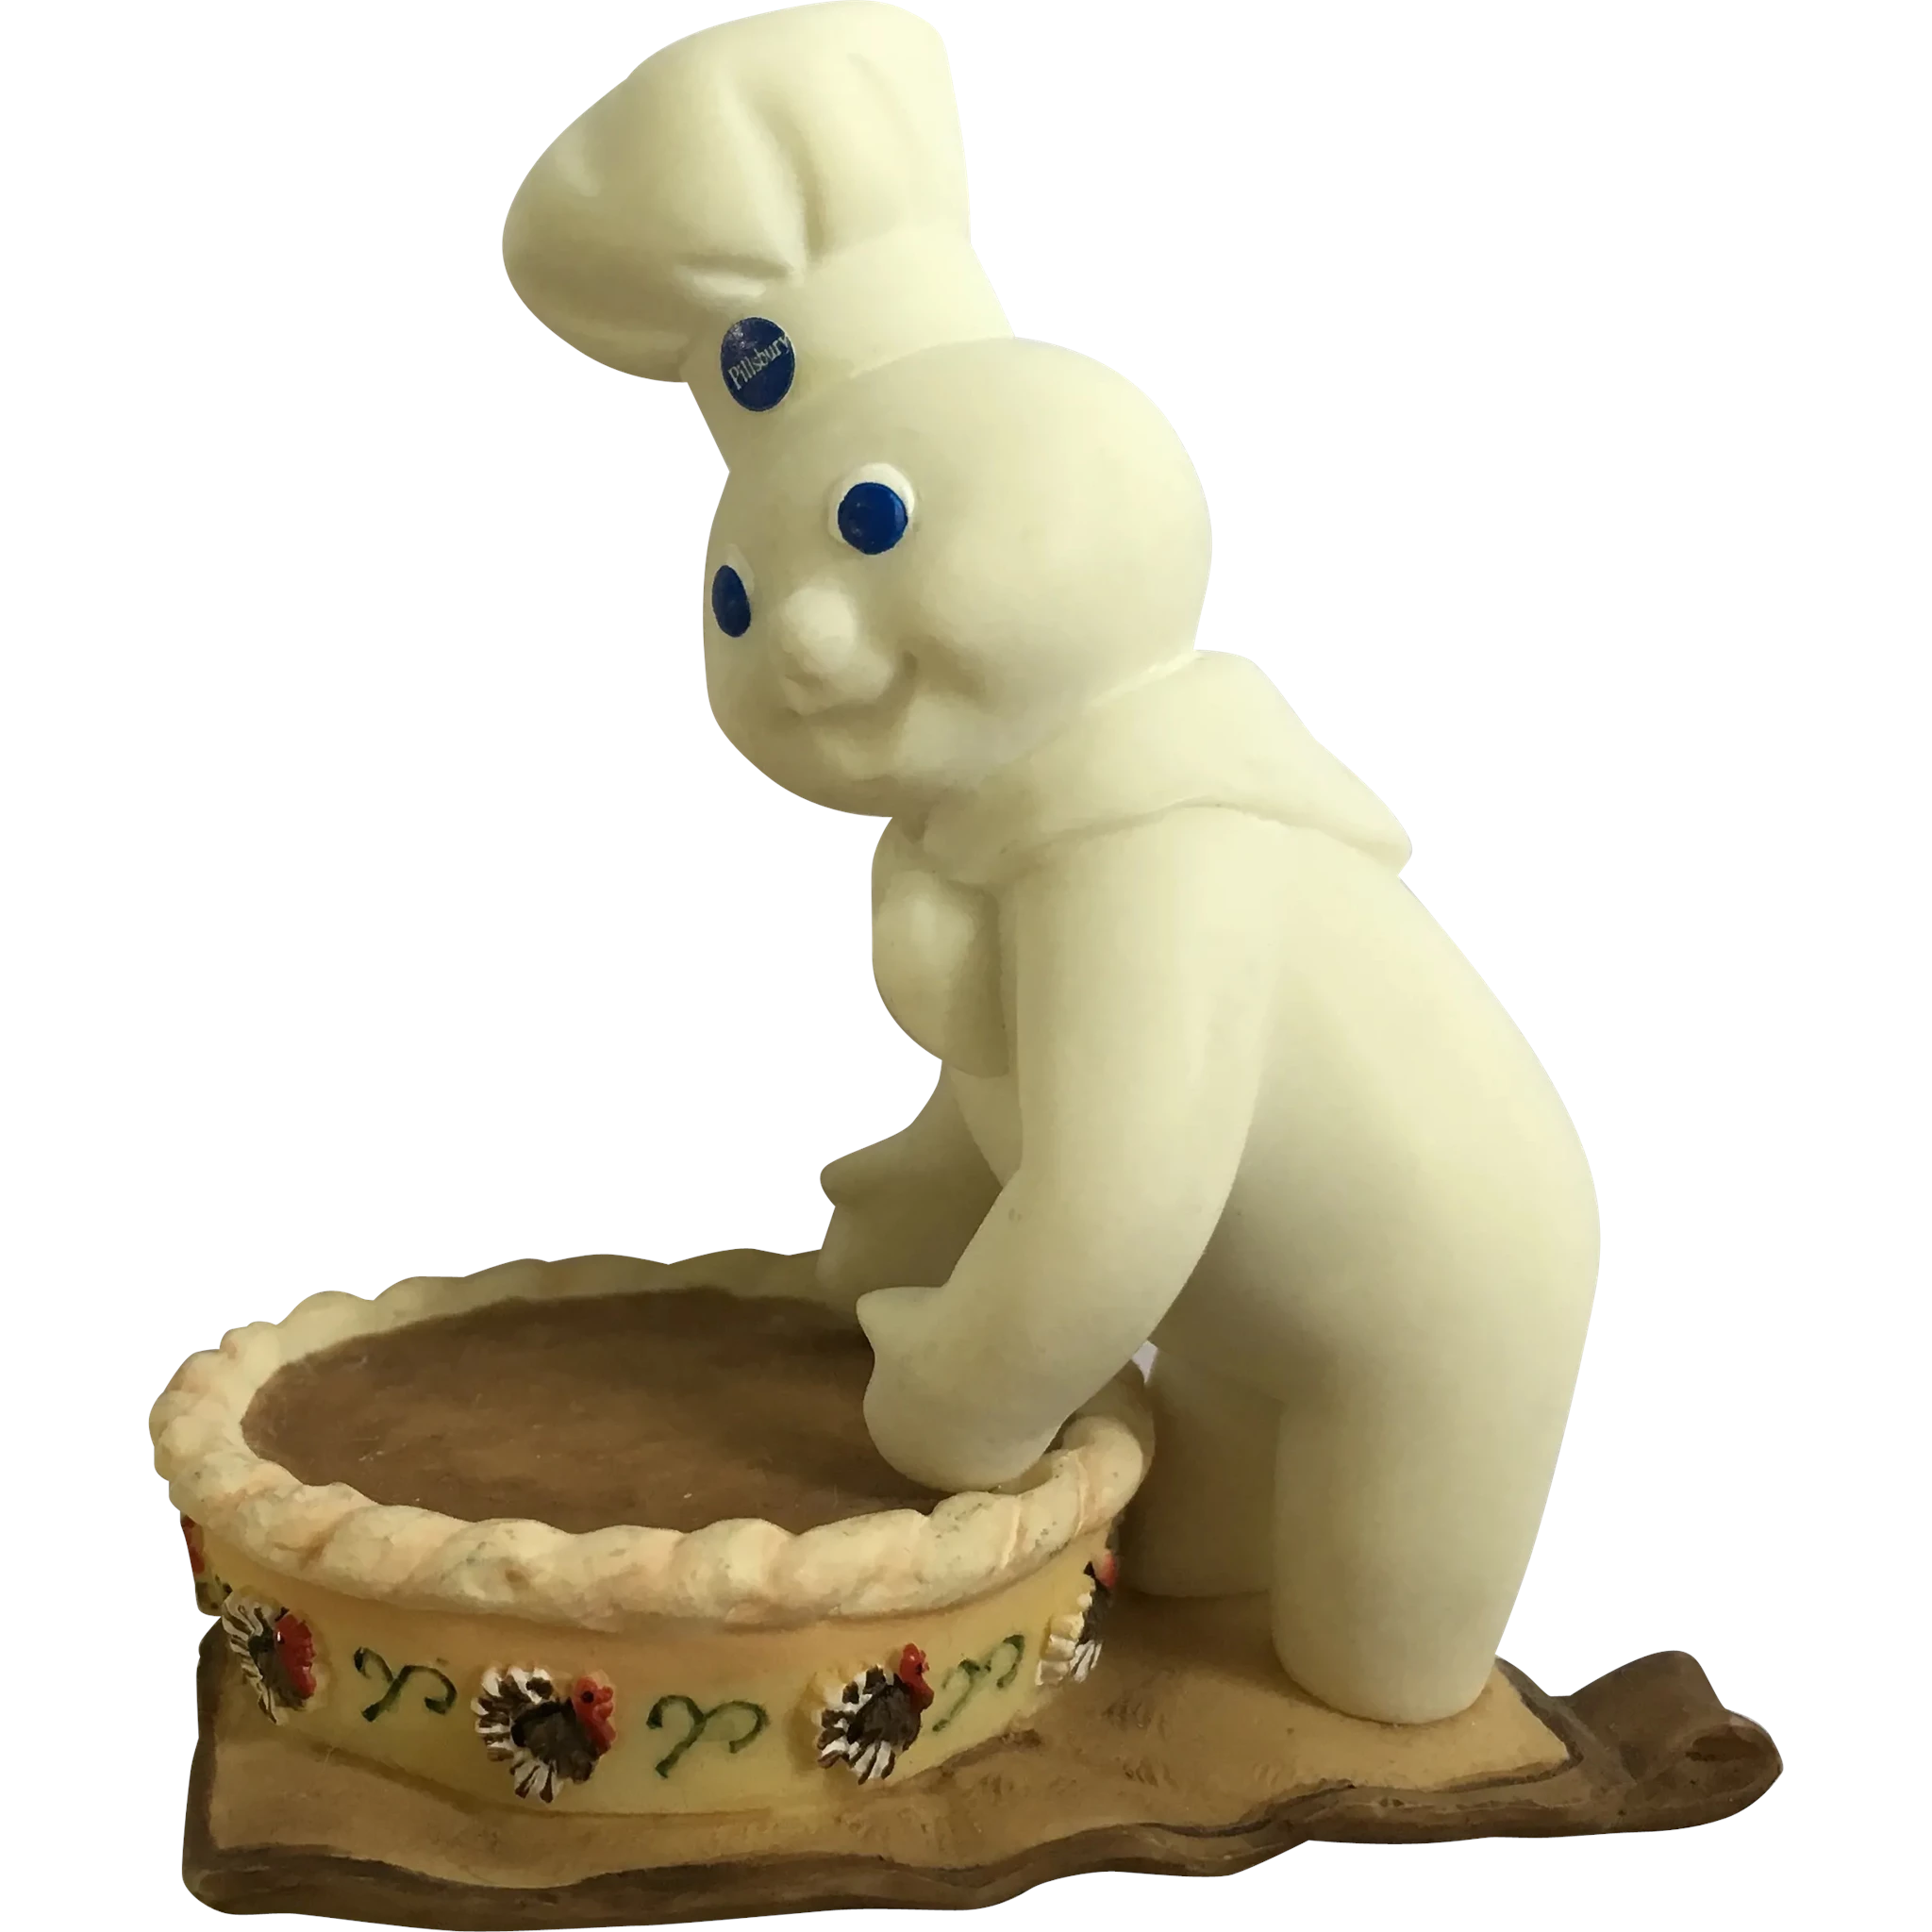 I Love The Adorable Pillsbury Doughboy He Is So Precious And Literally Sweet This Wonderful Figurine Is In Great Condition With No Damages He Is Grabbing For